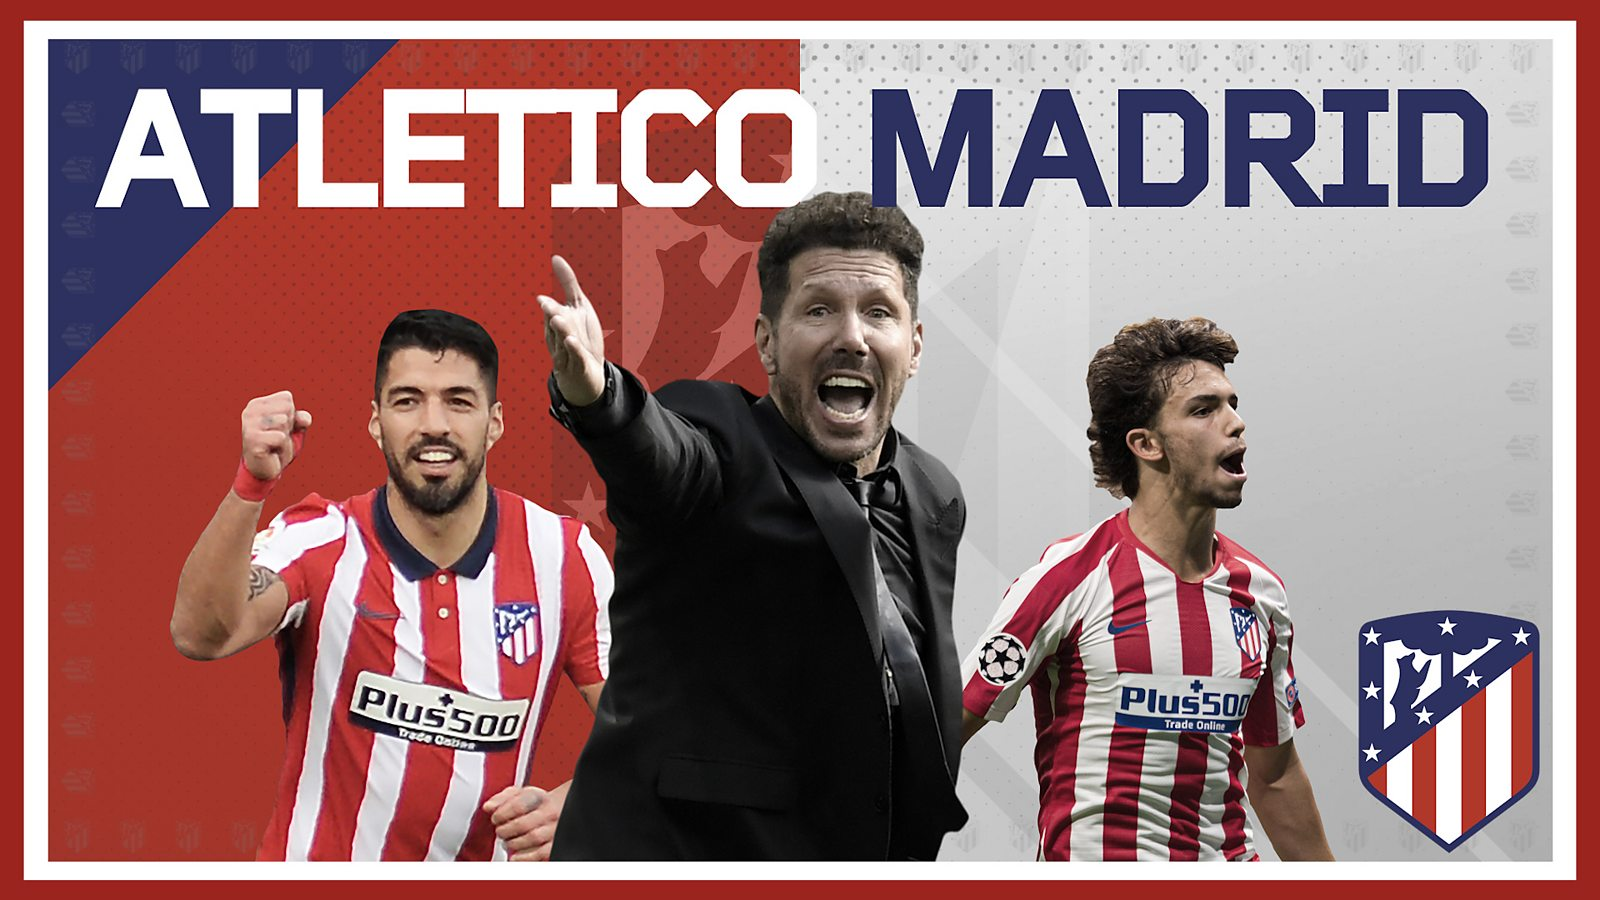 'They're here to stay' - Why Atletico Madrid have broken La Liga's duopoly